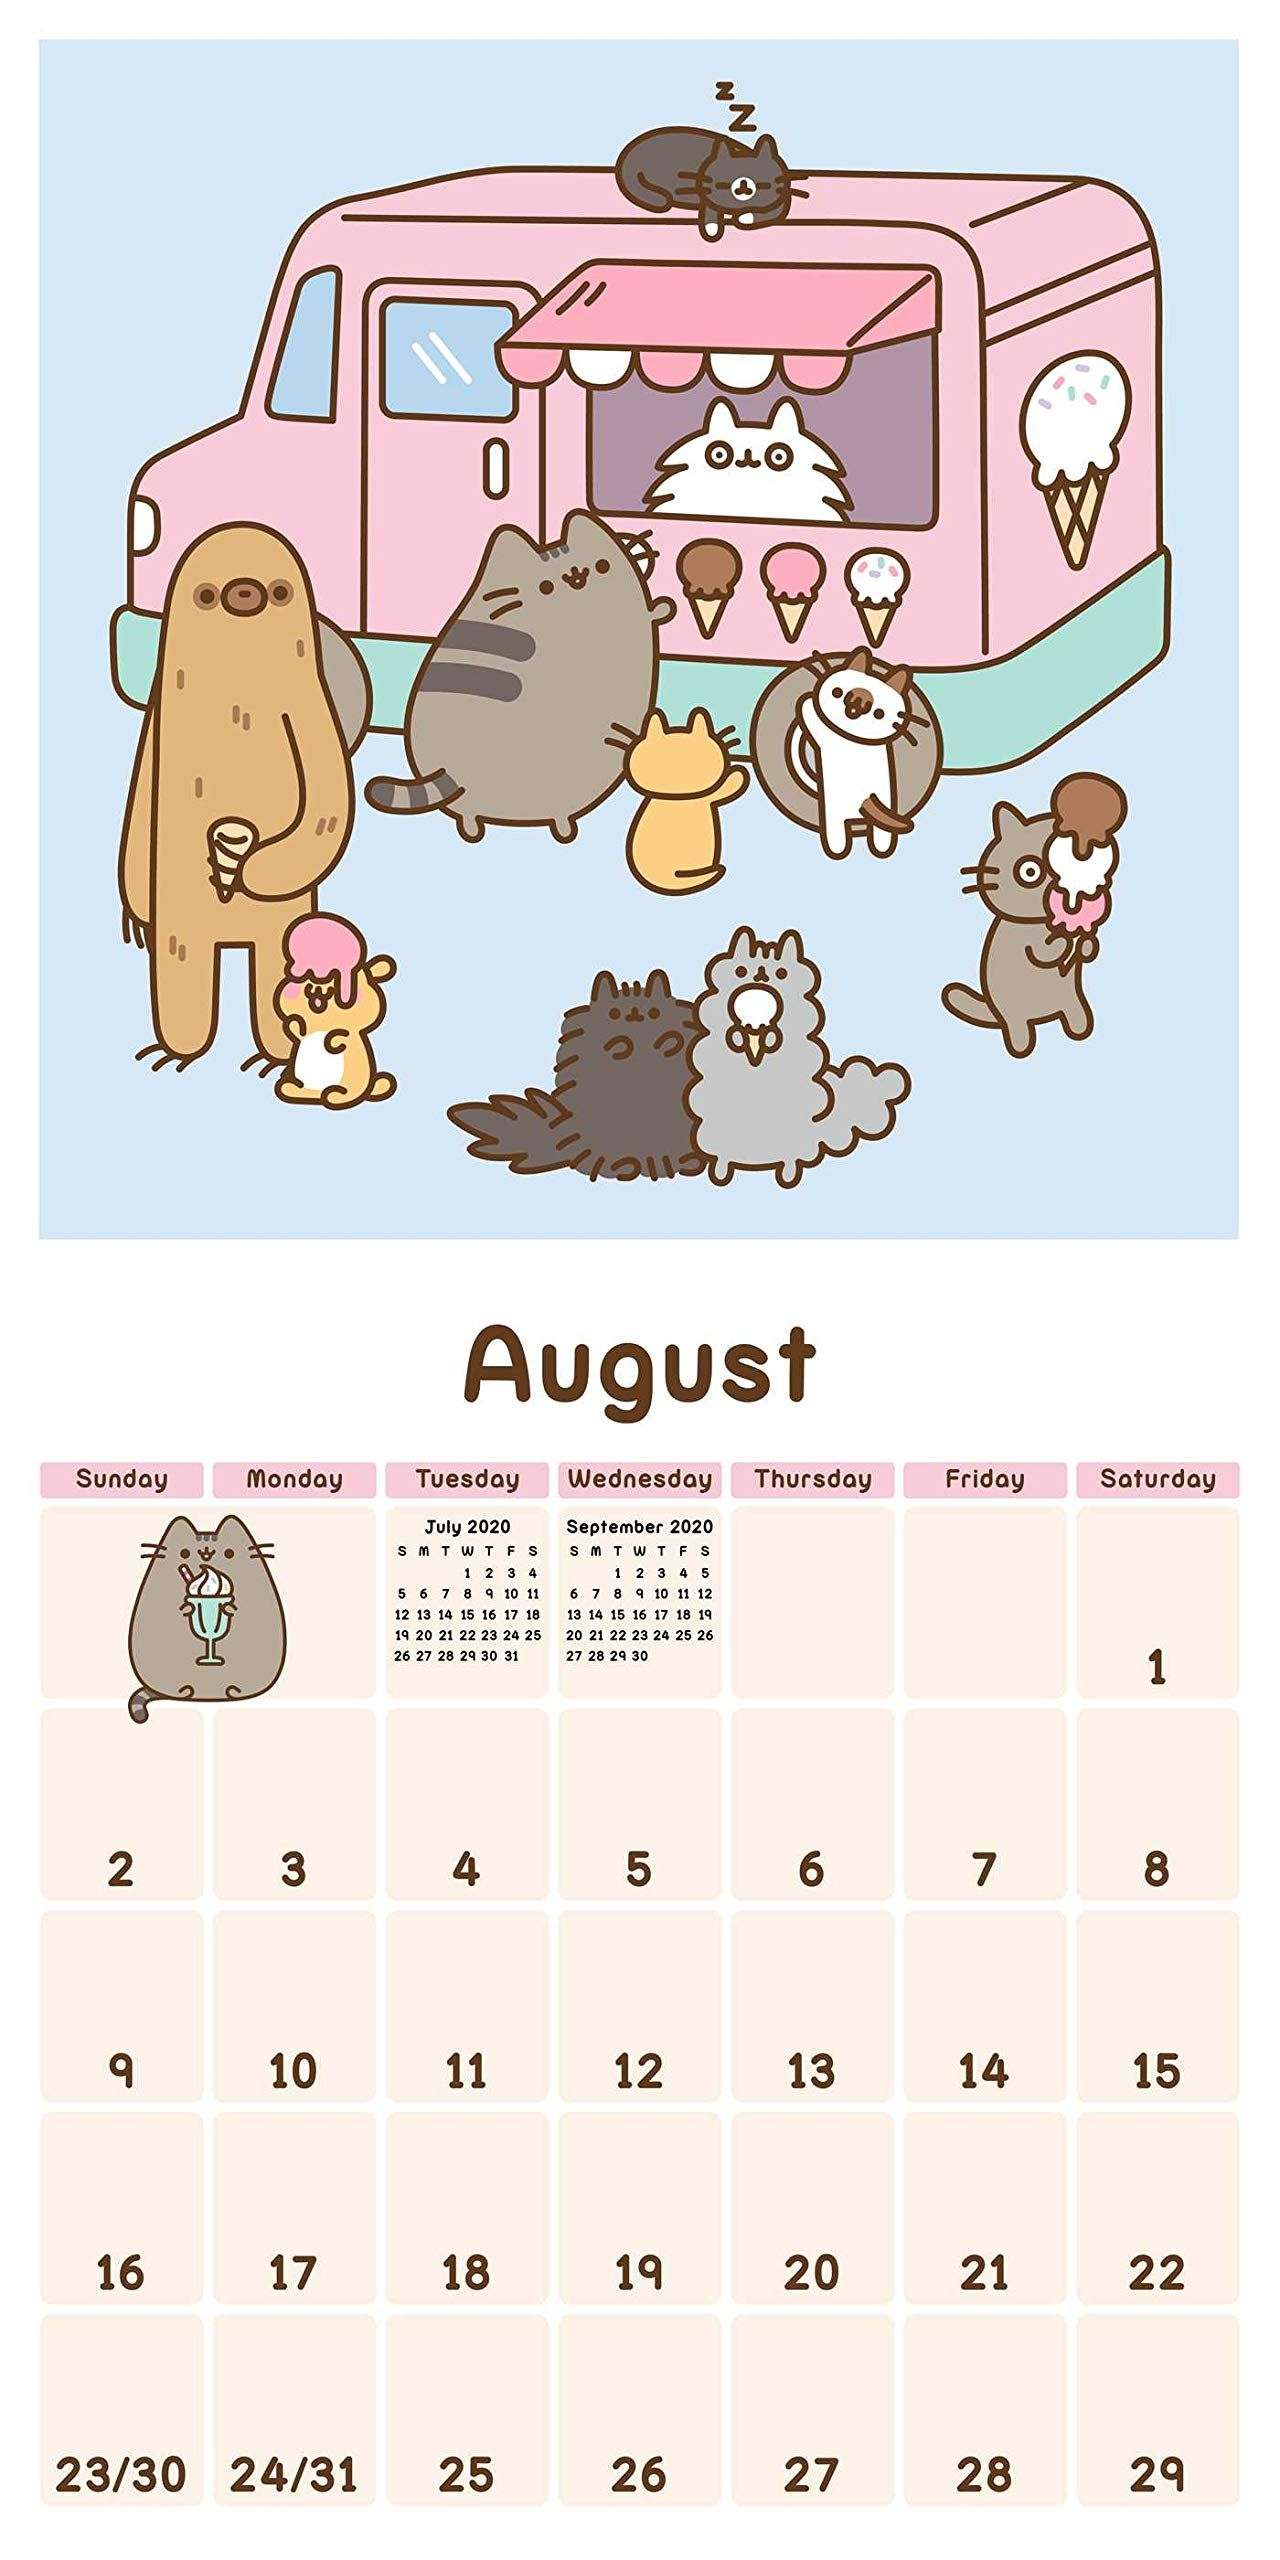 Calendrier Fun Car 2020.Pusheen 2020 Wall Calendar Calendar Wall Calendar July 16